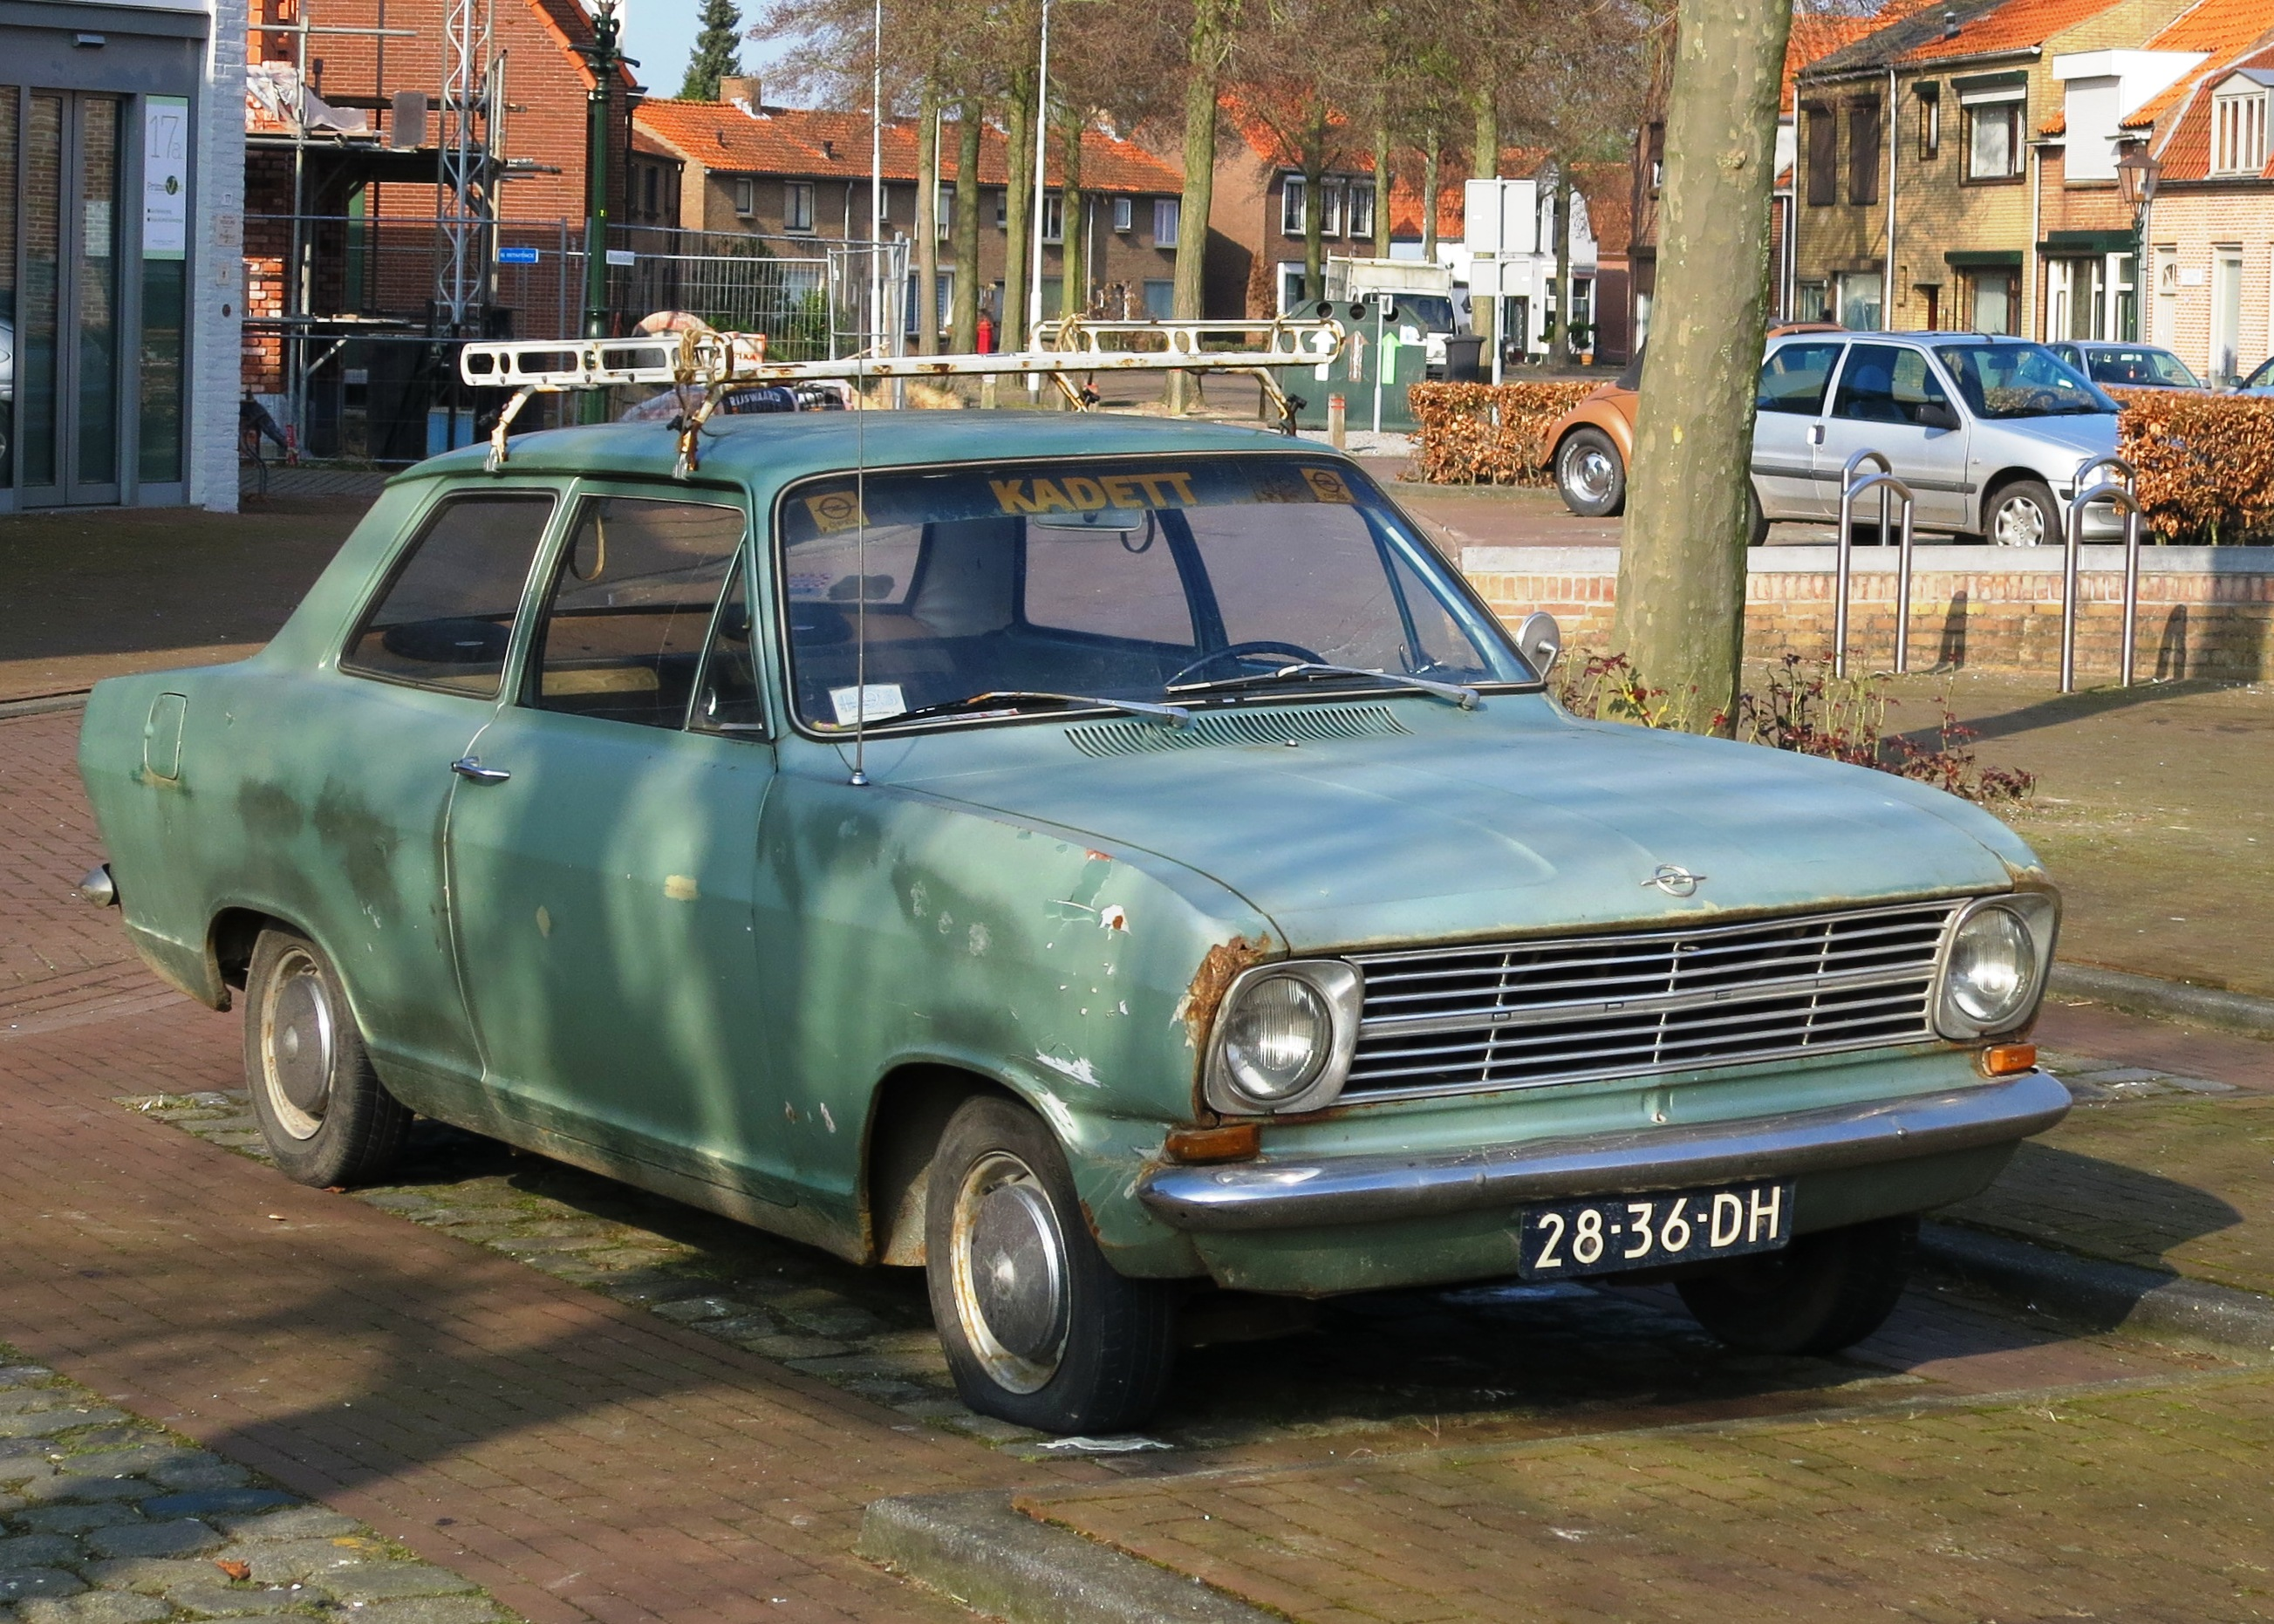 file opel kadett b 2 door berline in aardenburg car ca 1972 photo 2015 jpg wikimedia commons. Black Bedroom Furniture Sets. Home Design Ideas